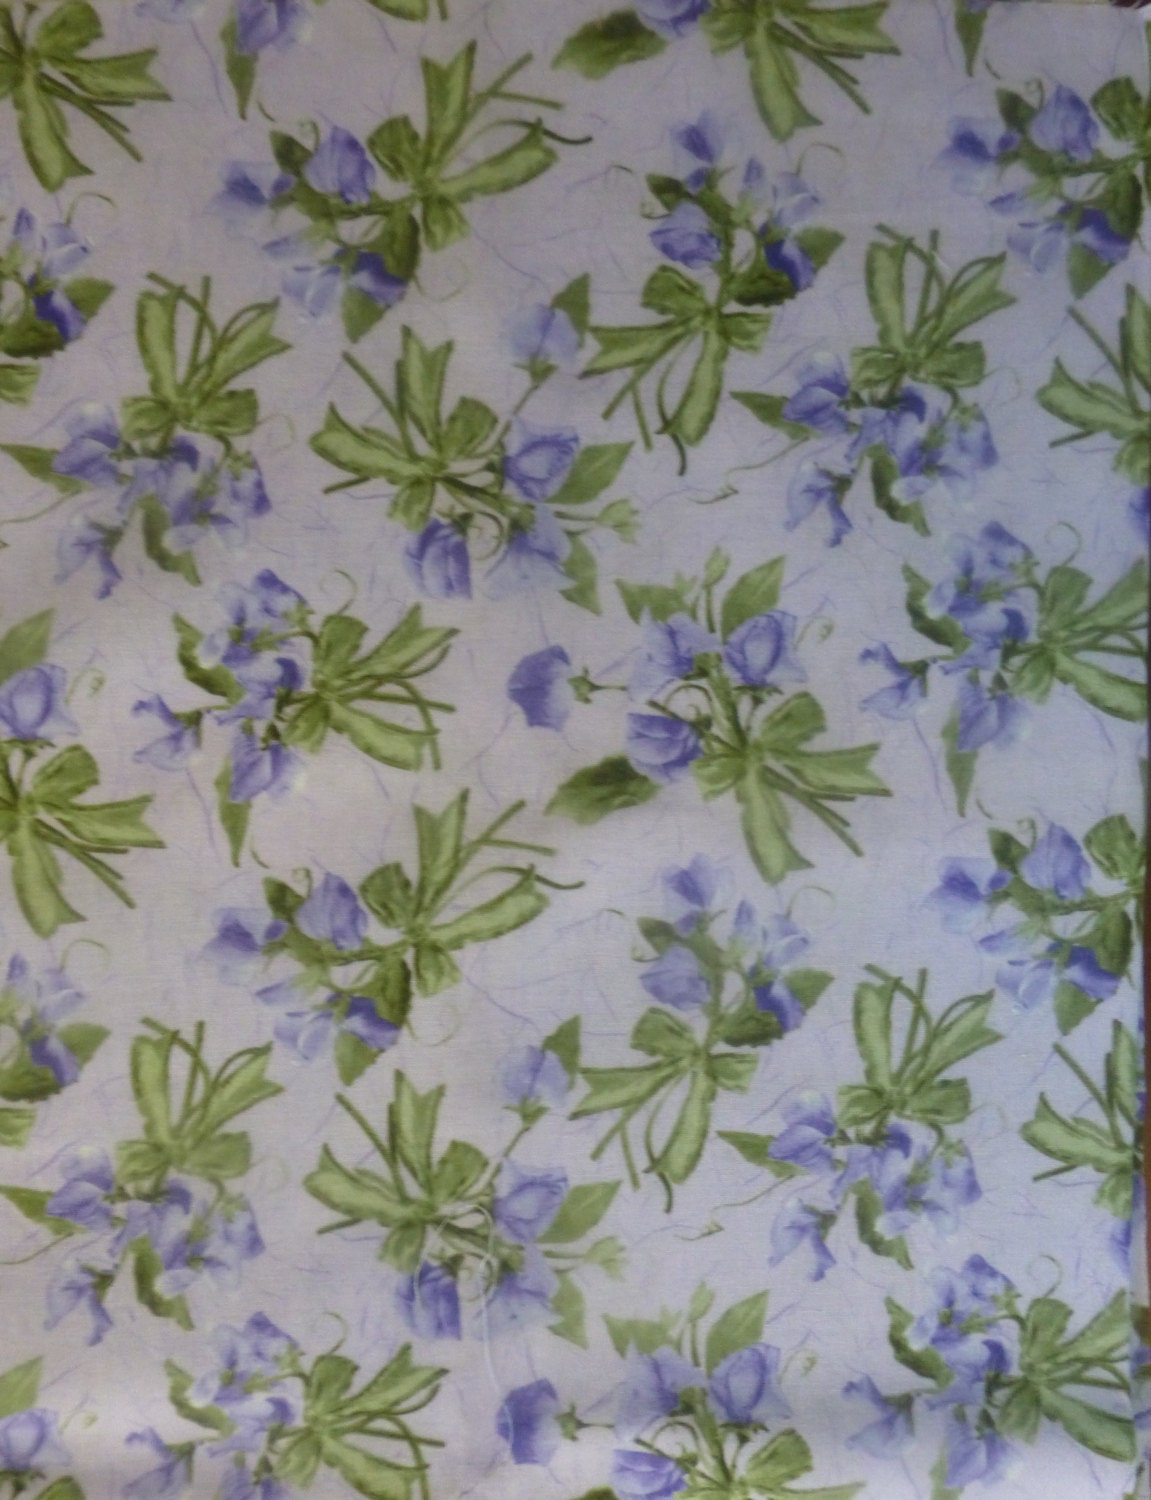 Cotton Fabric Quilt Home Decor Floral A 12 Yard